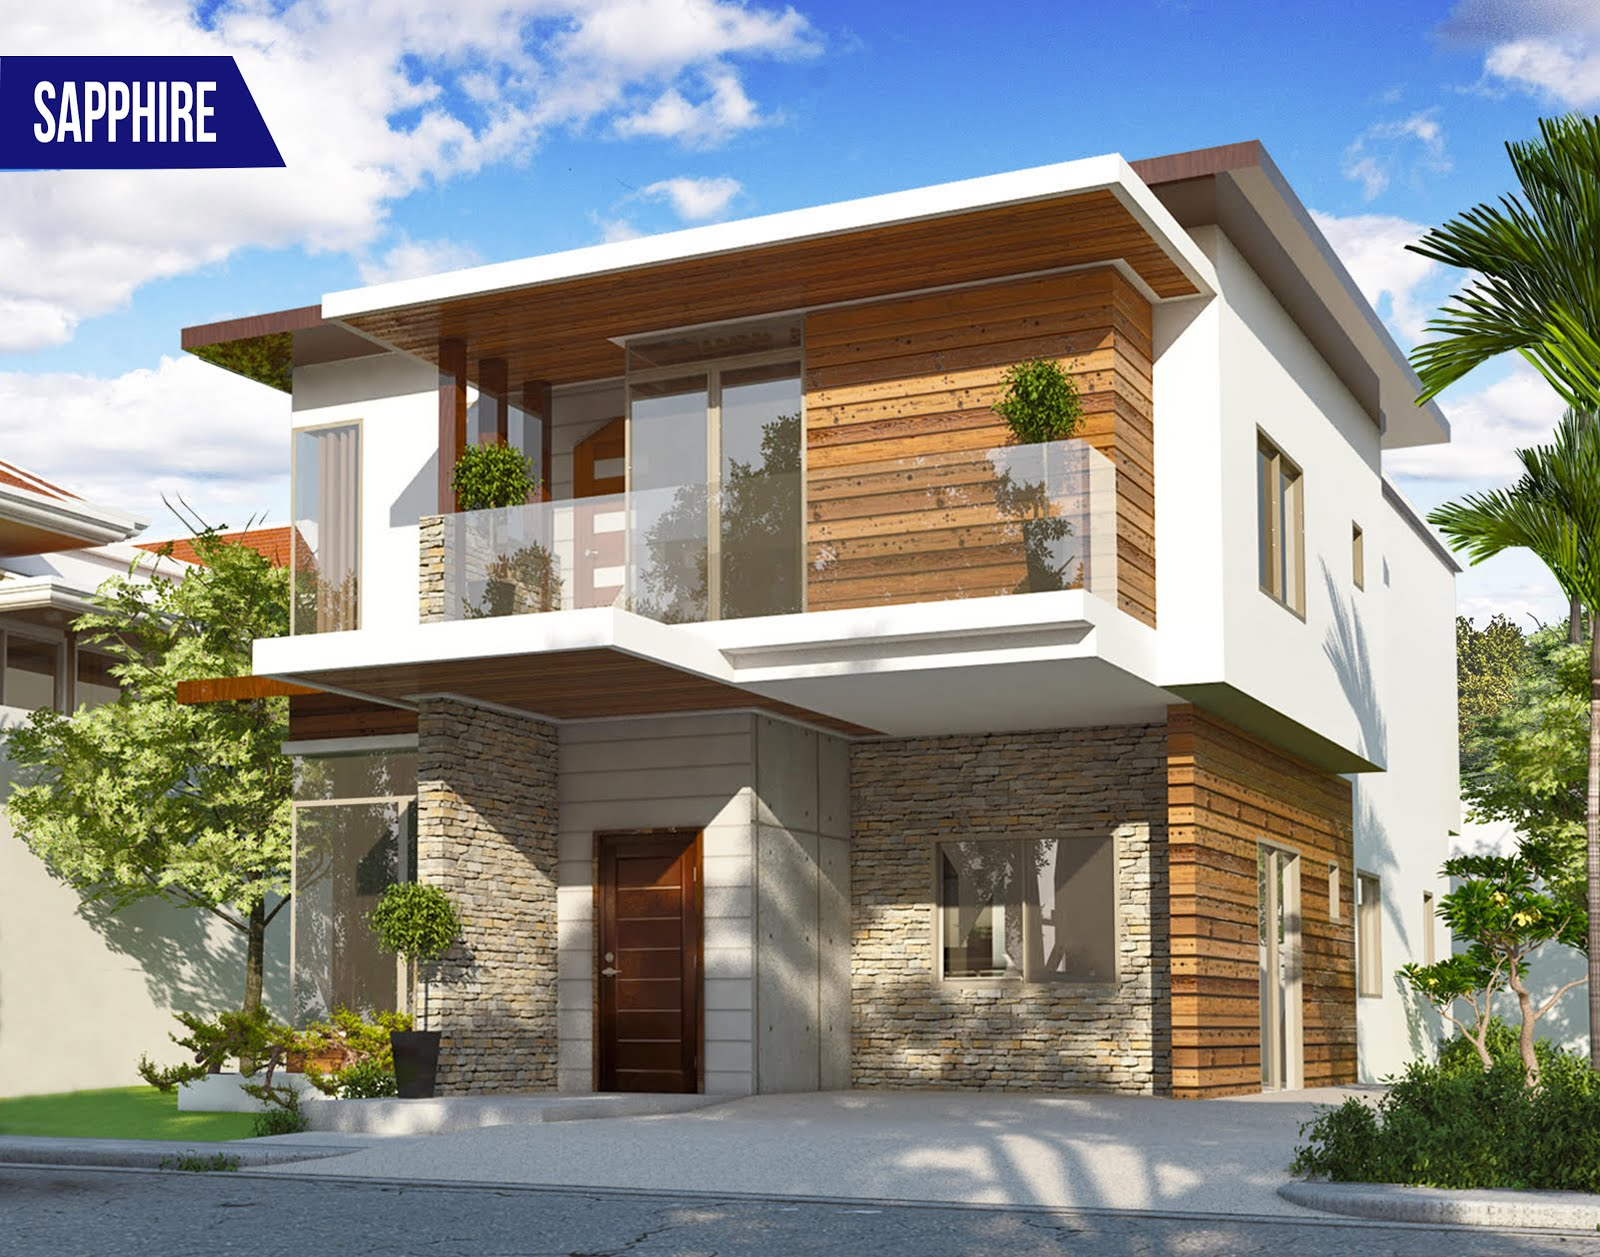 A Smart Philippine House Builder: The Basics of Latest ...